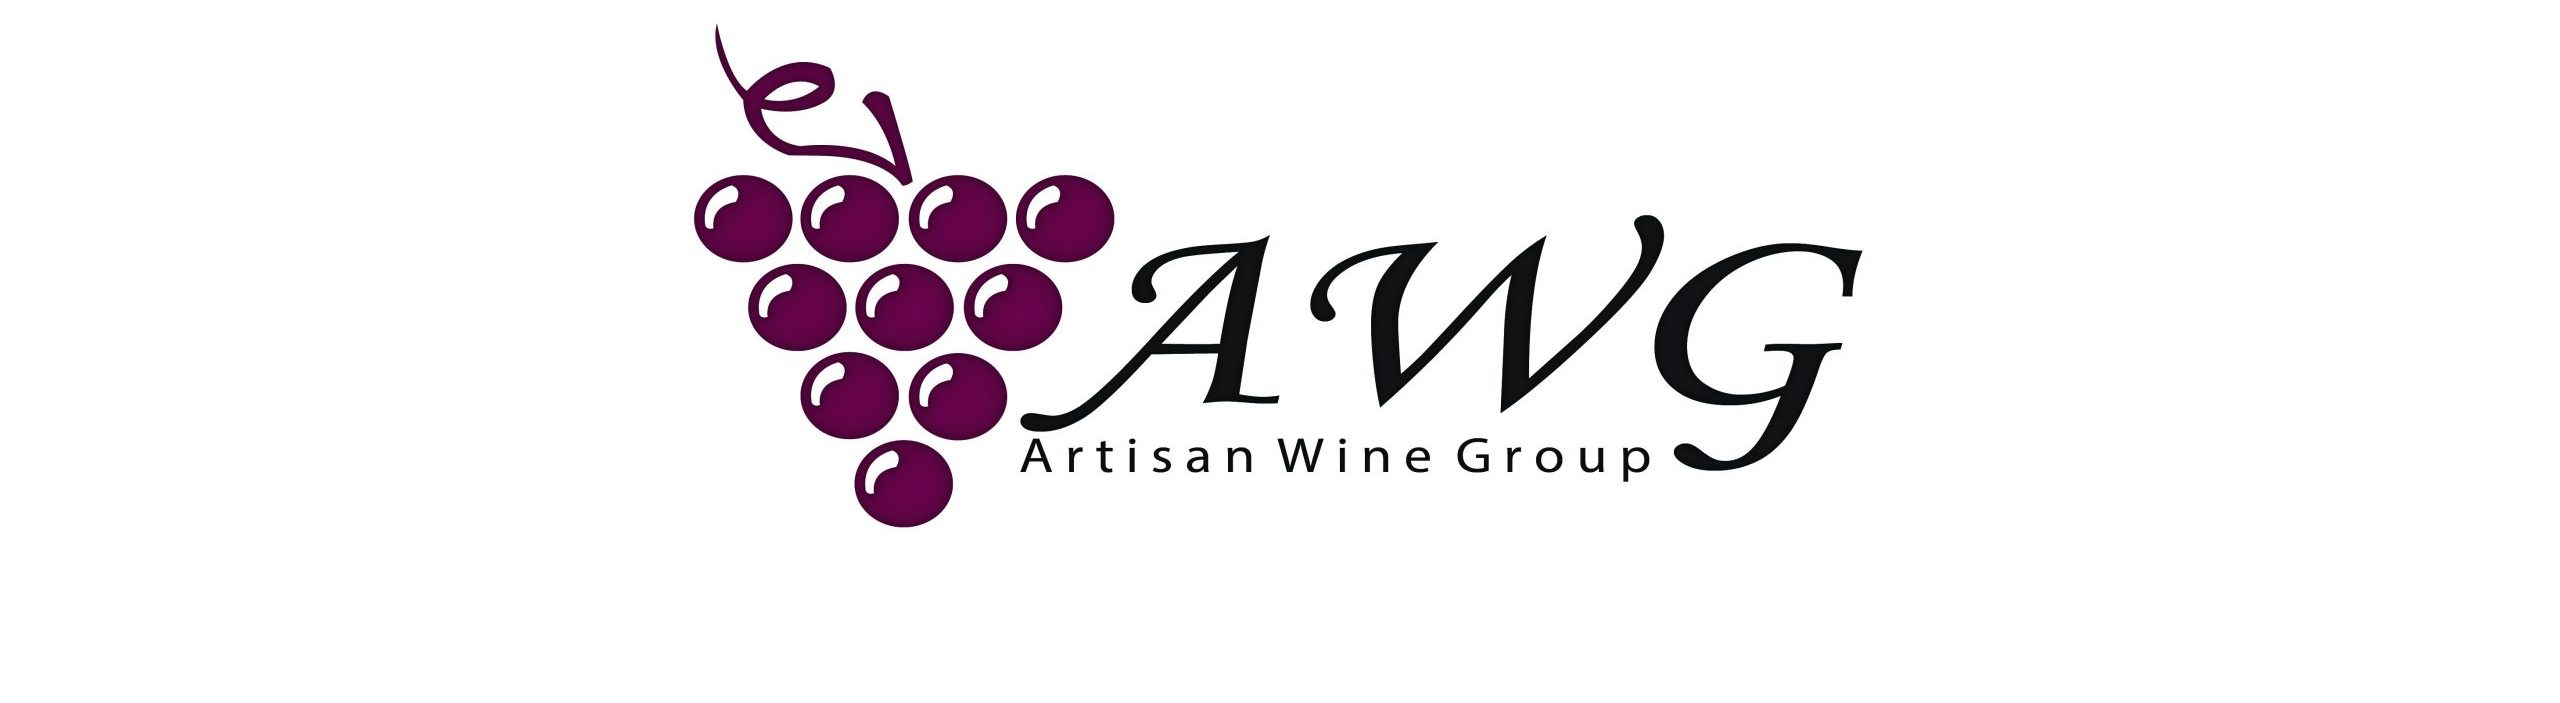 Artisan Wine Group